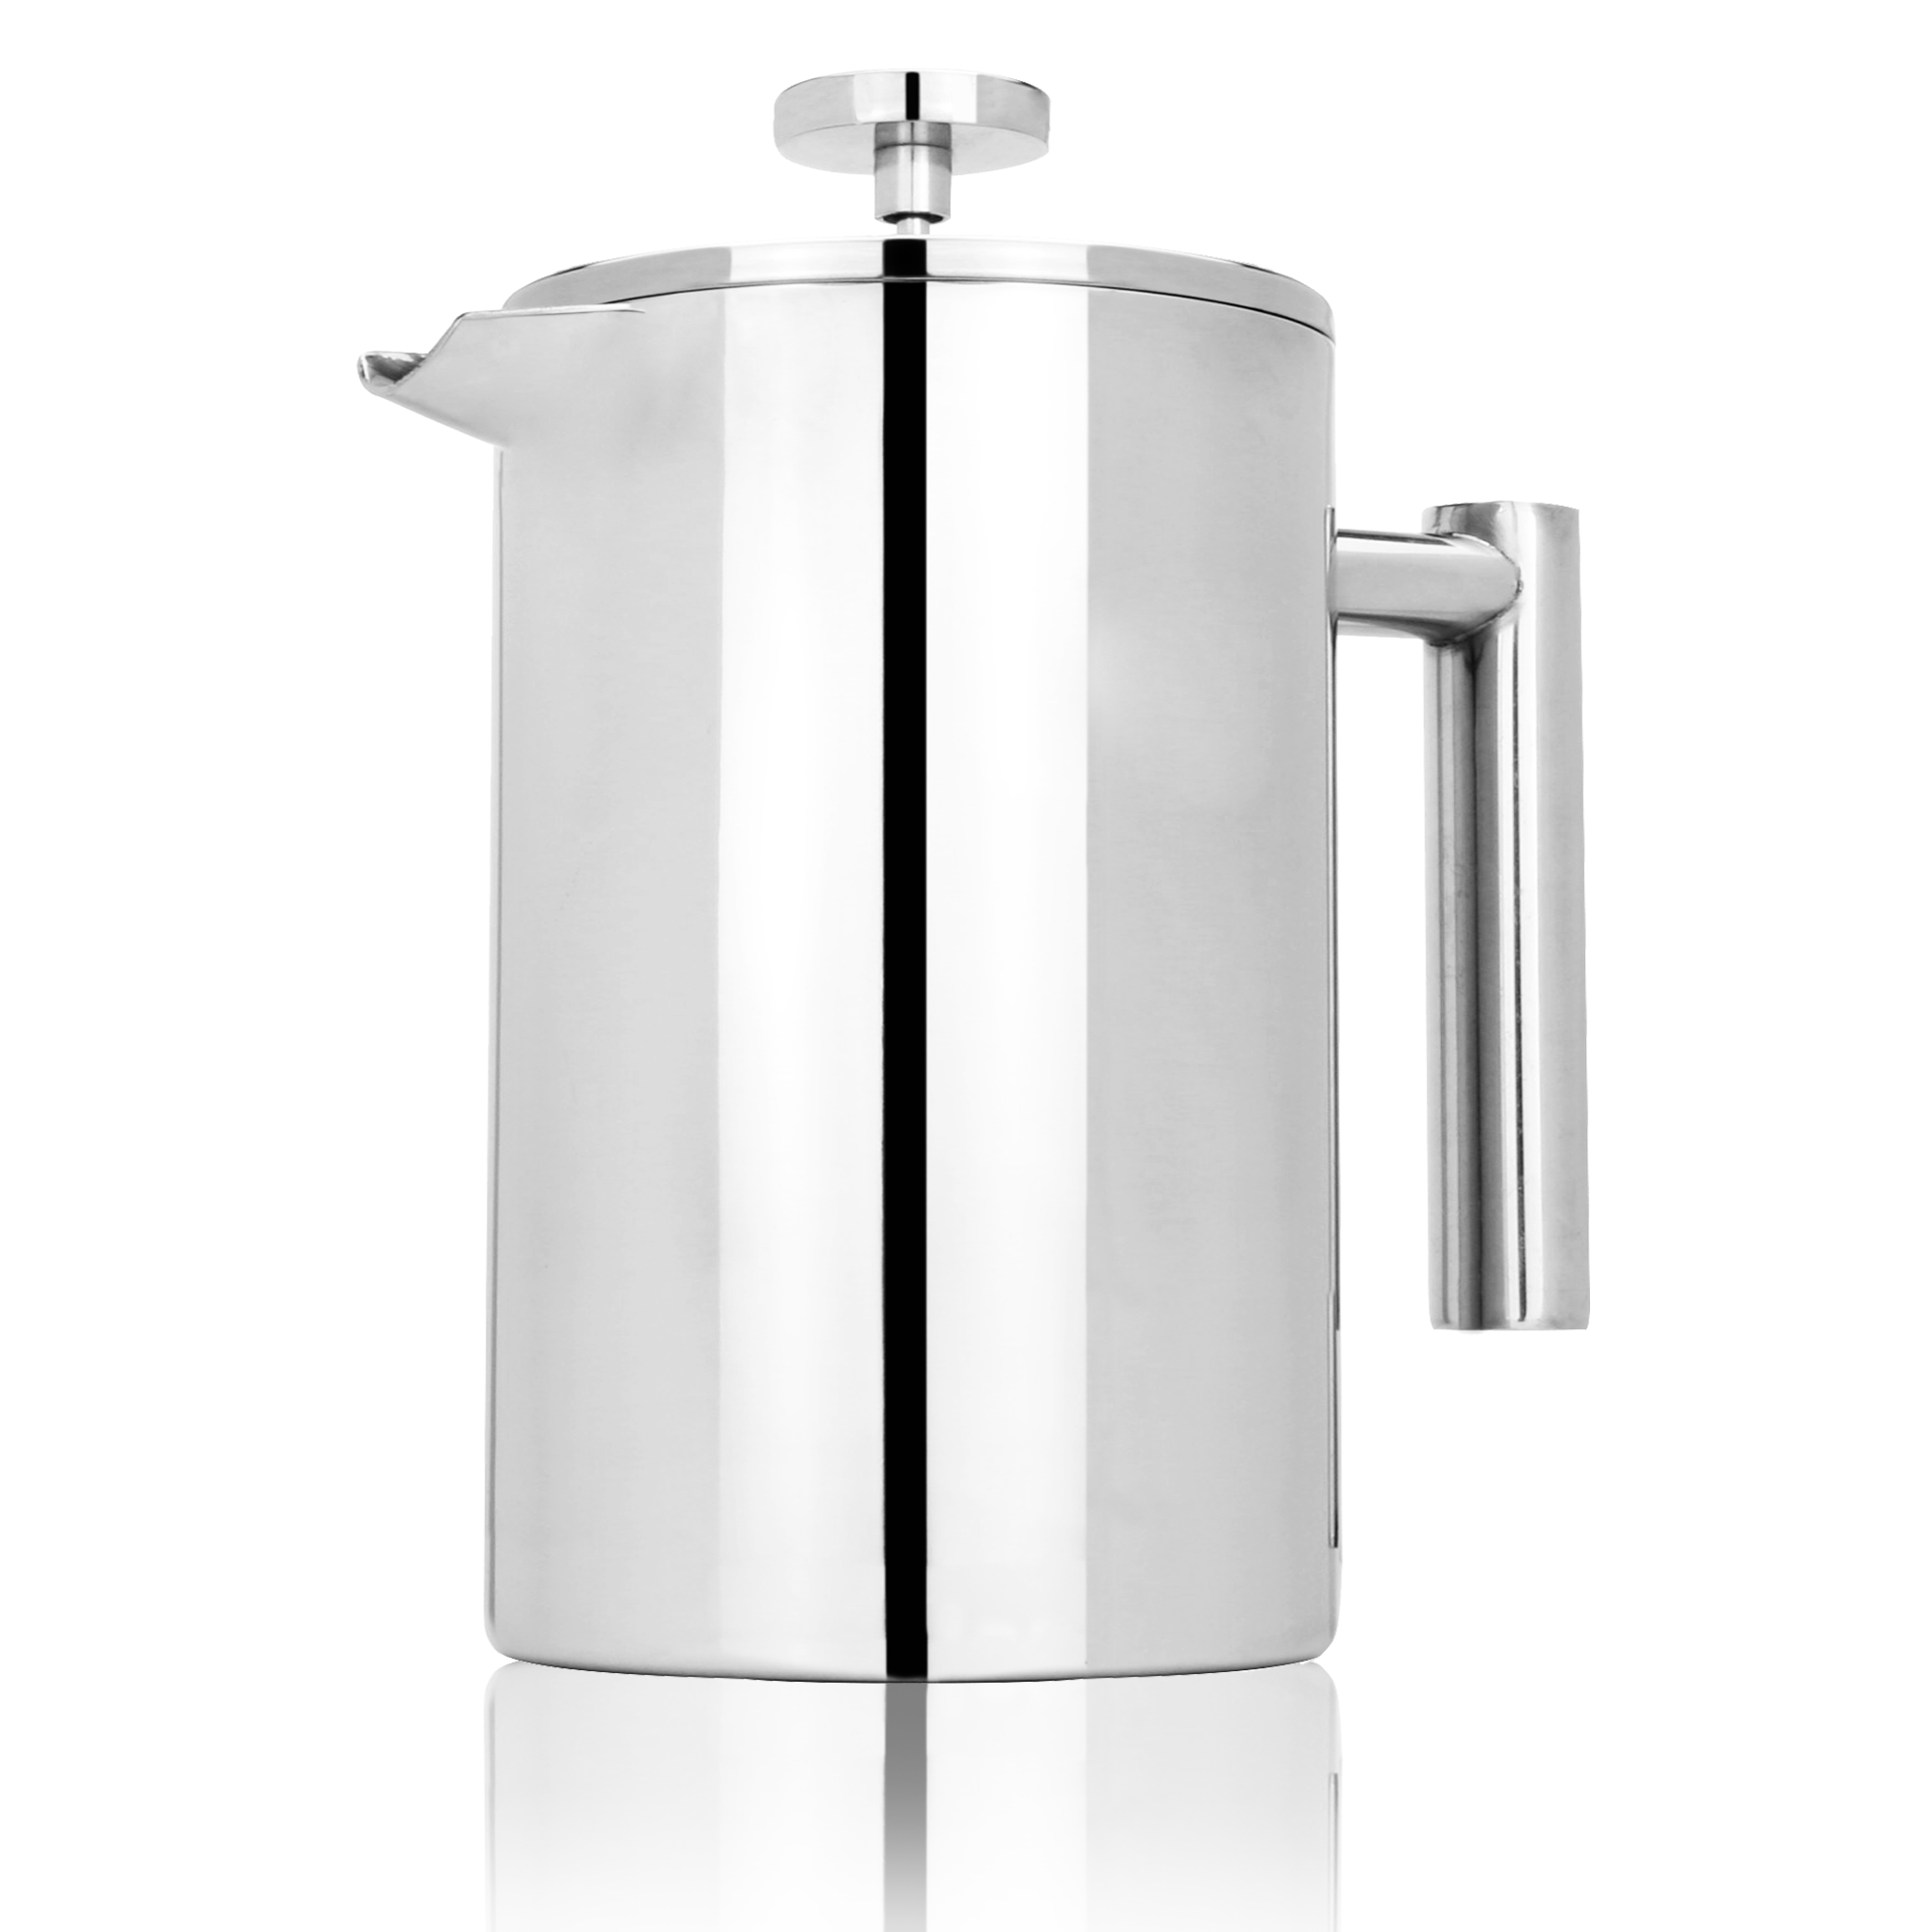 French-Press-Cafetiere-Steel-Coffee-Maker-FREE-Filters-amp-Spoons-M-amp-W miniatura 23